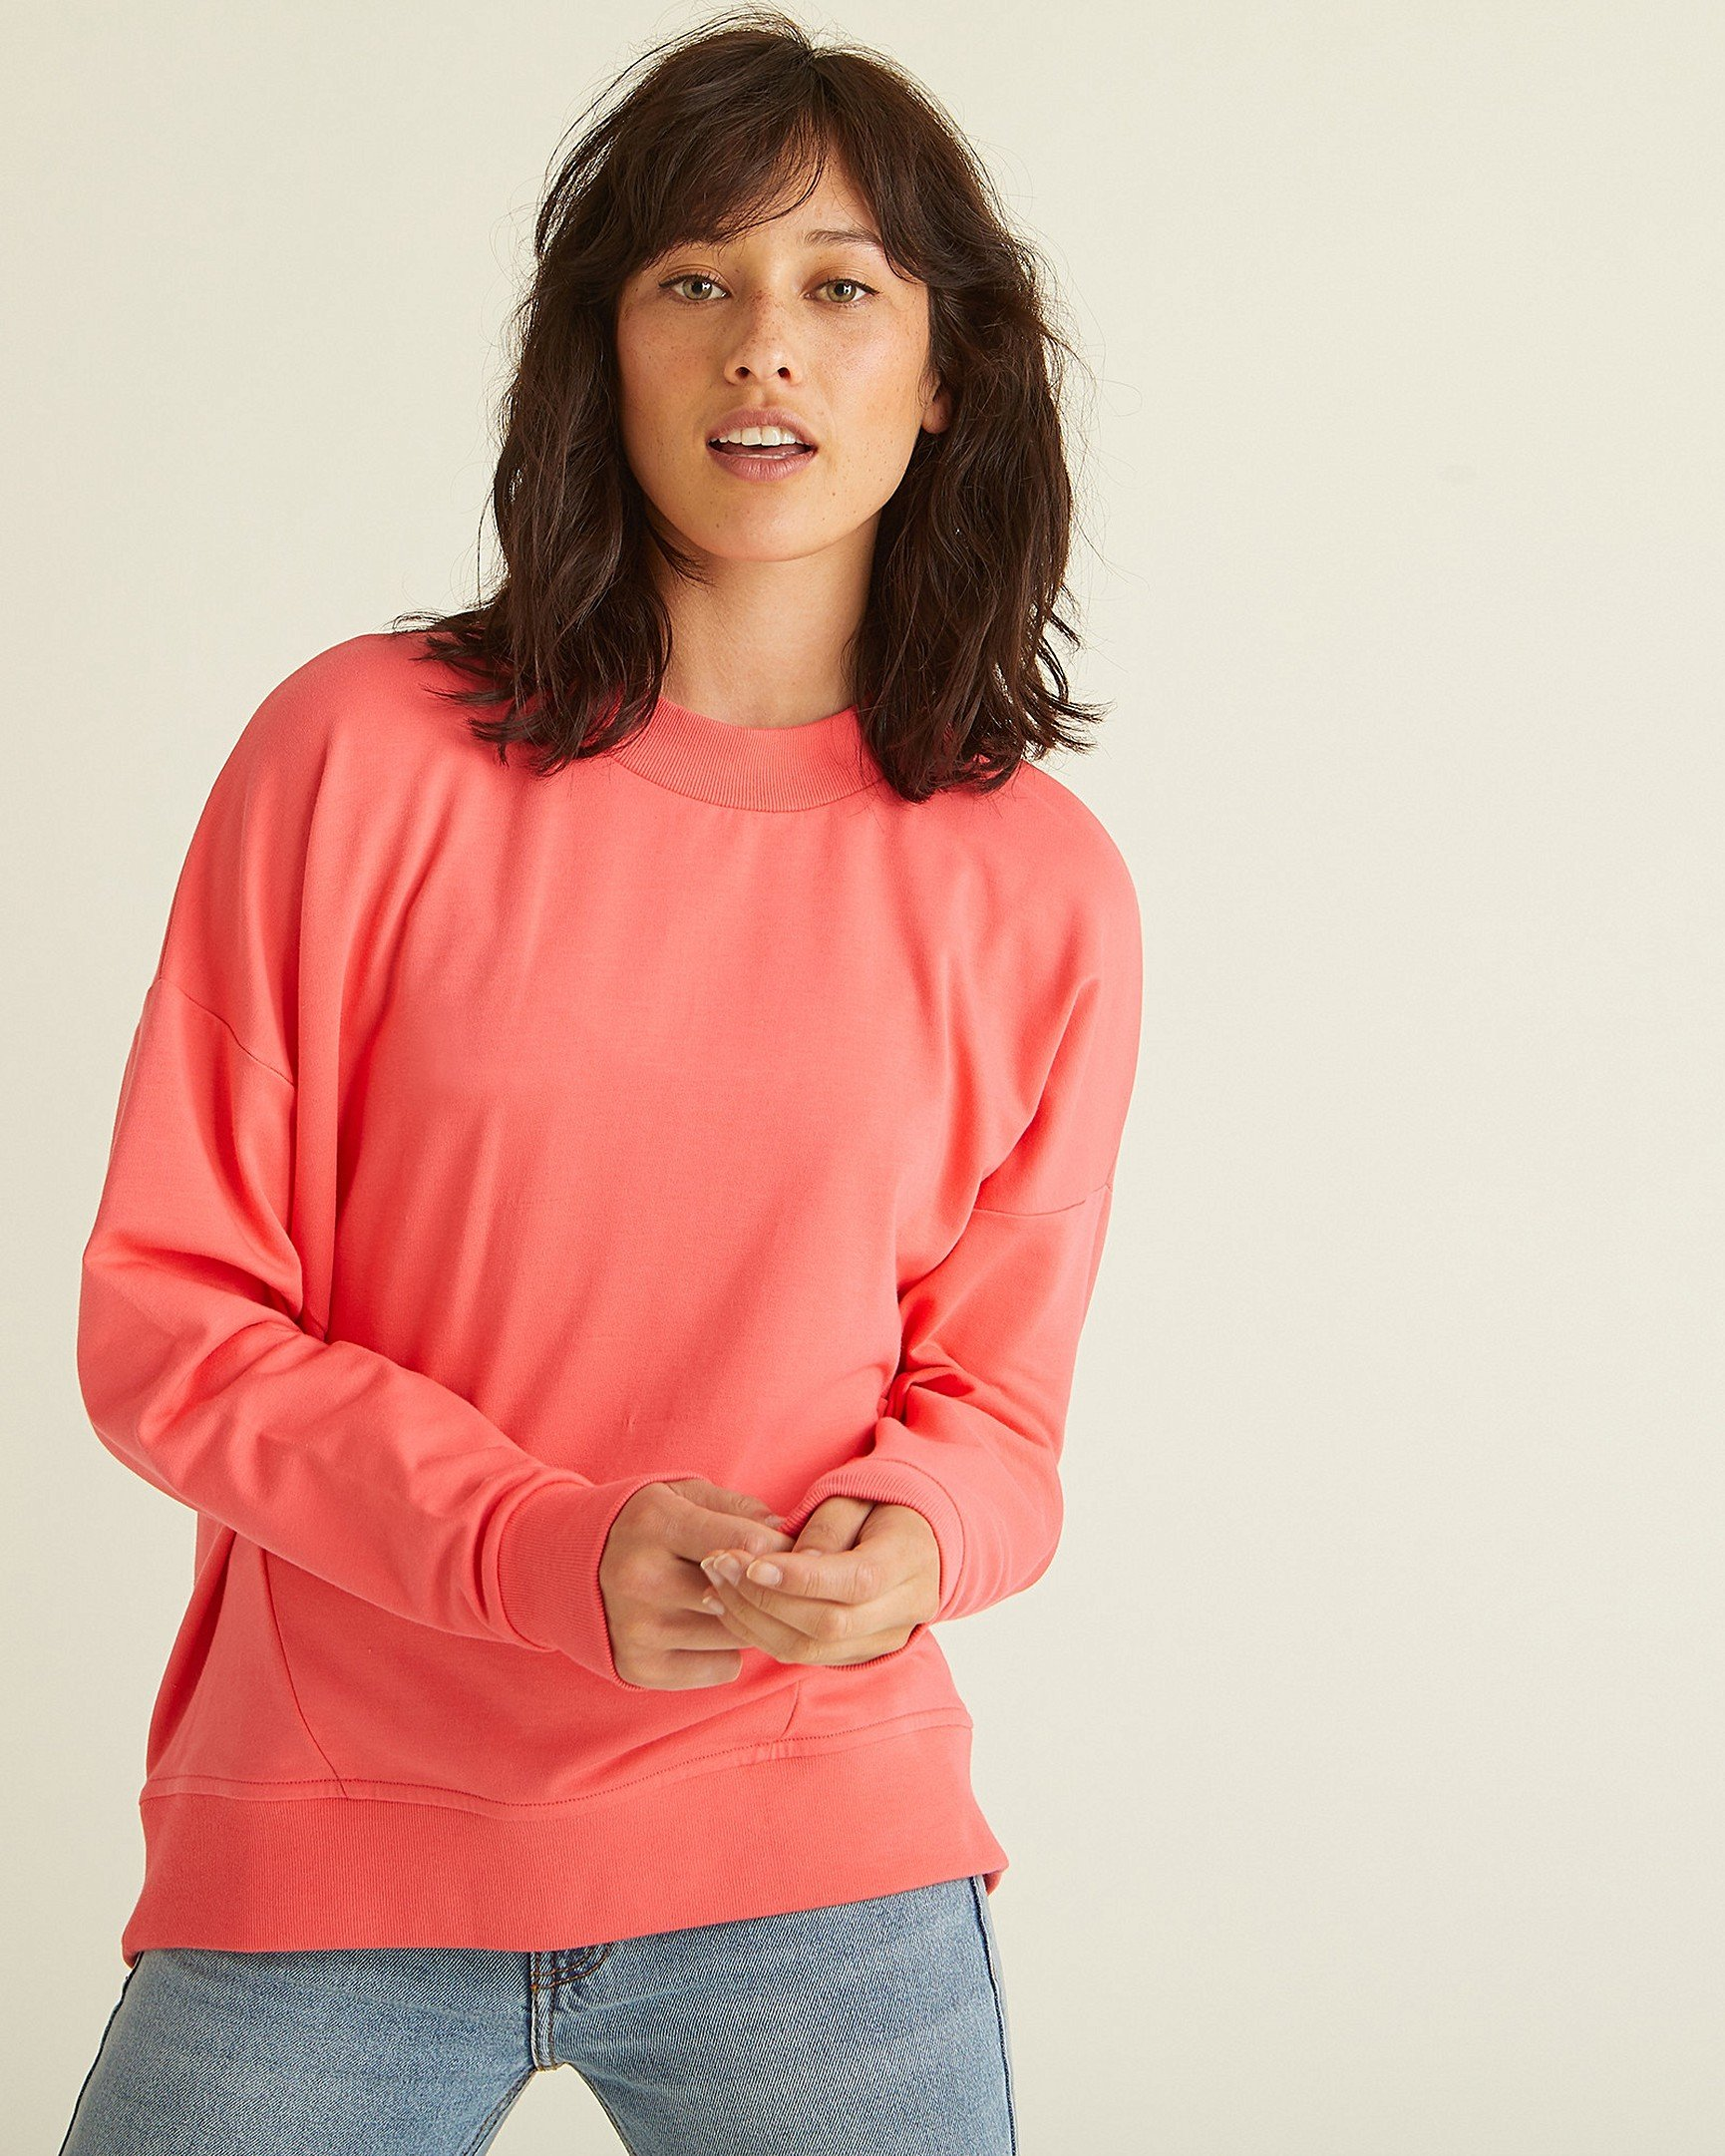 c0aae4882f2128 Tops | Blouses, Shirts & Tops for Women | Oliver Bonas